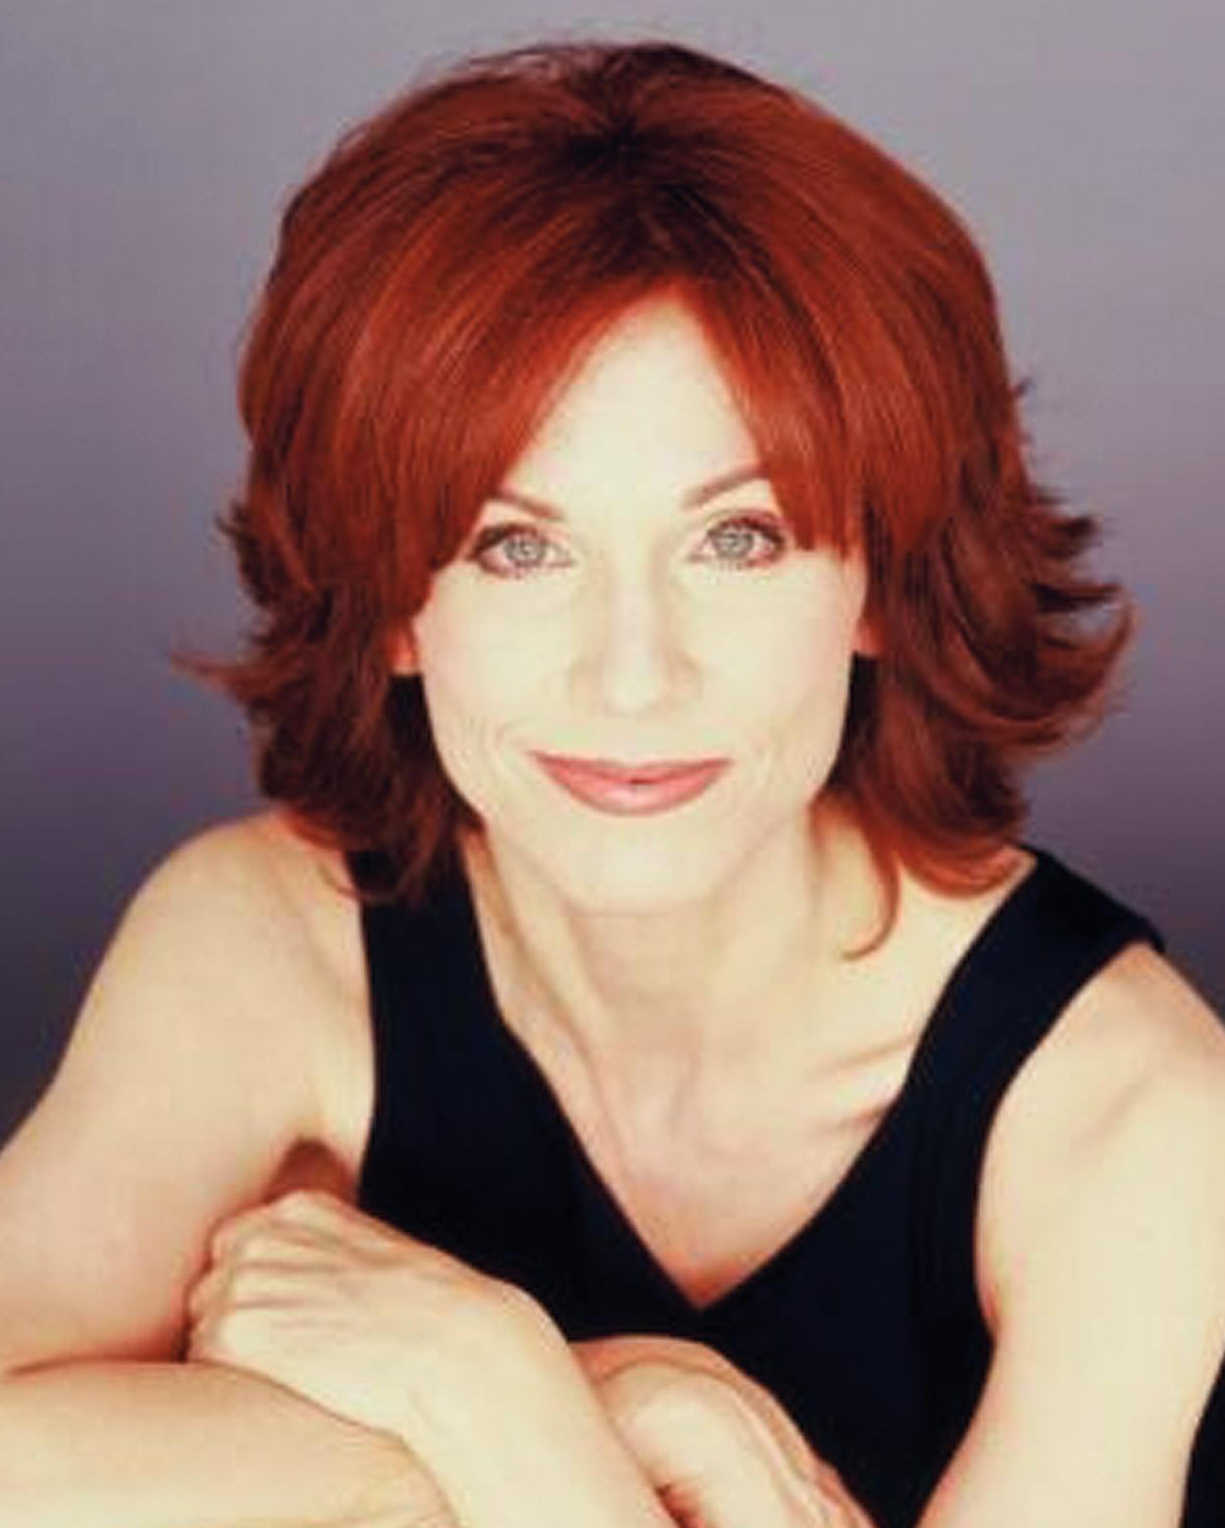 Forum on this topic: Ashley Long, marilu-henner-born-april-6-1952-age/